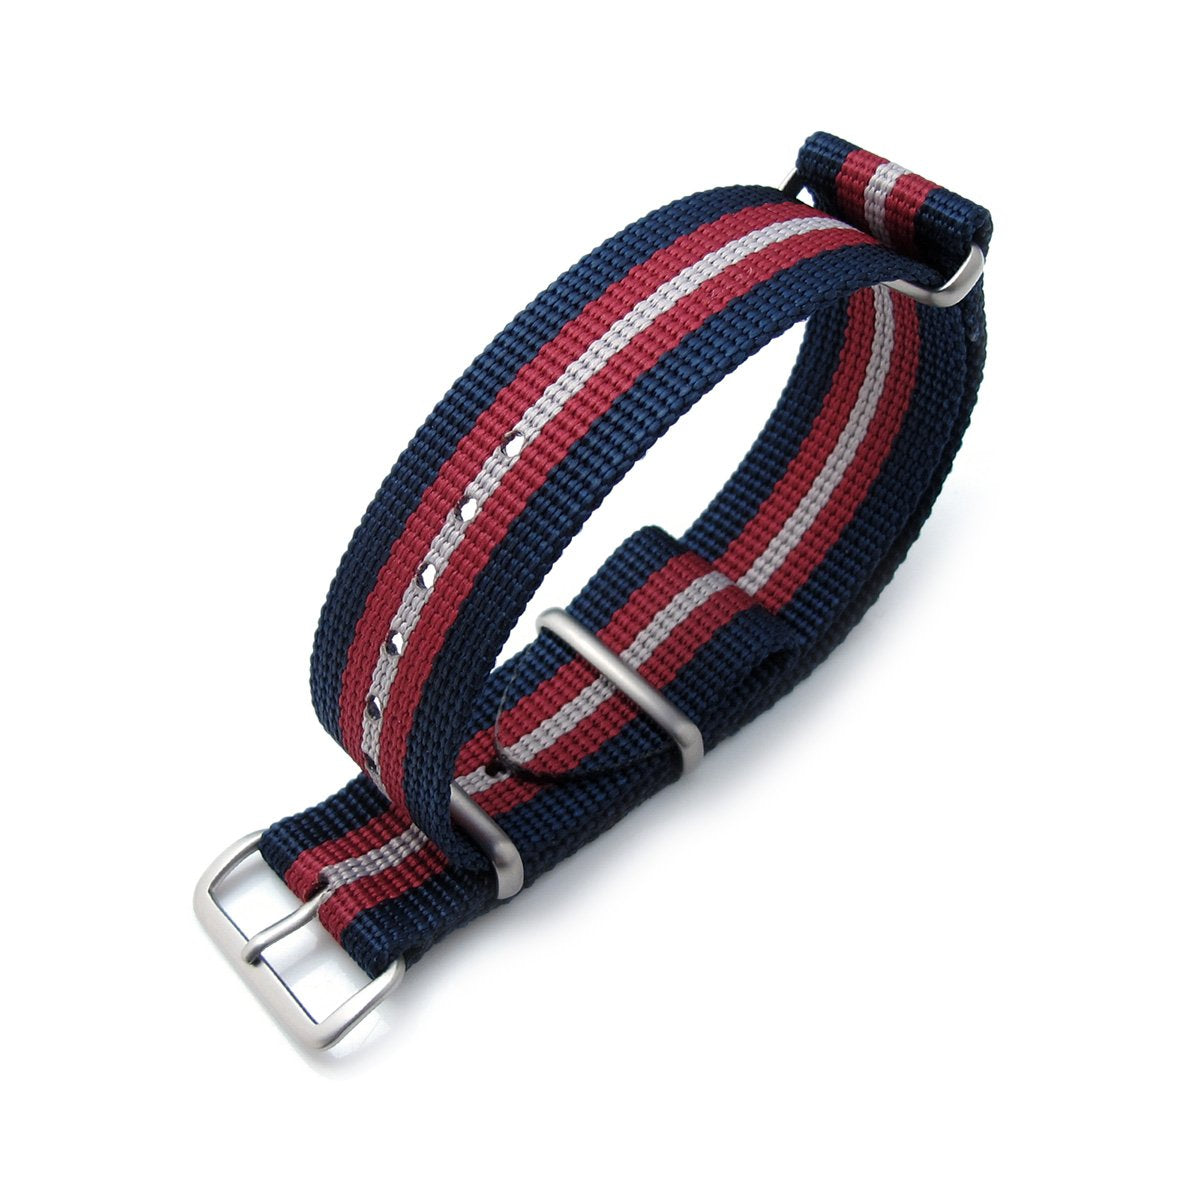 MiLTAT 20mm 21mm or 22mm G10 NATO Bullet Tail Watch Strap Ballistic Nylon Brushed Blue Red & Grey Stripes Strapcode Watch Bands